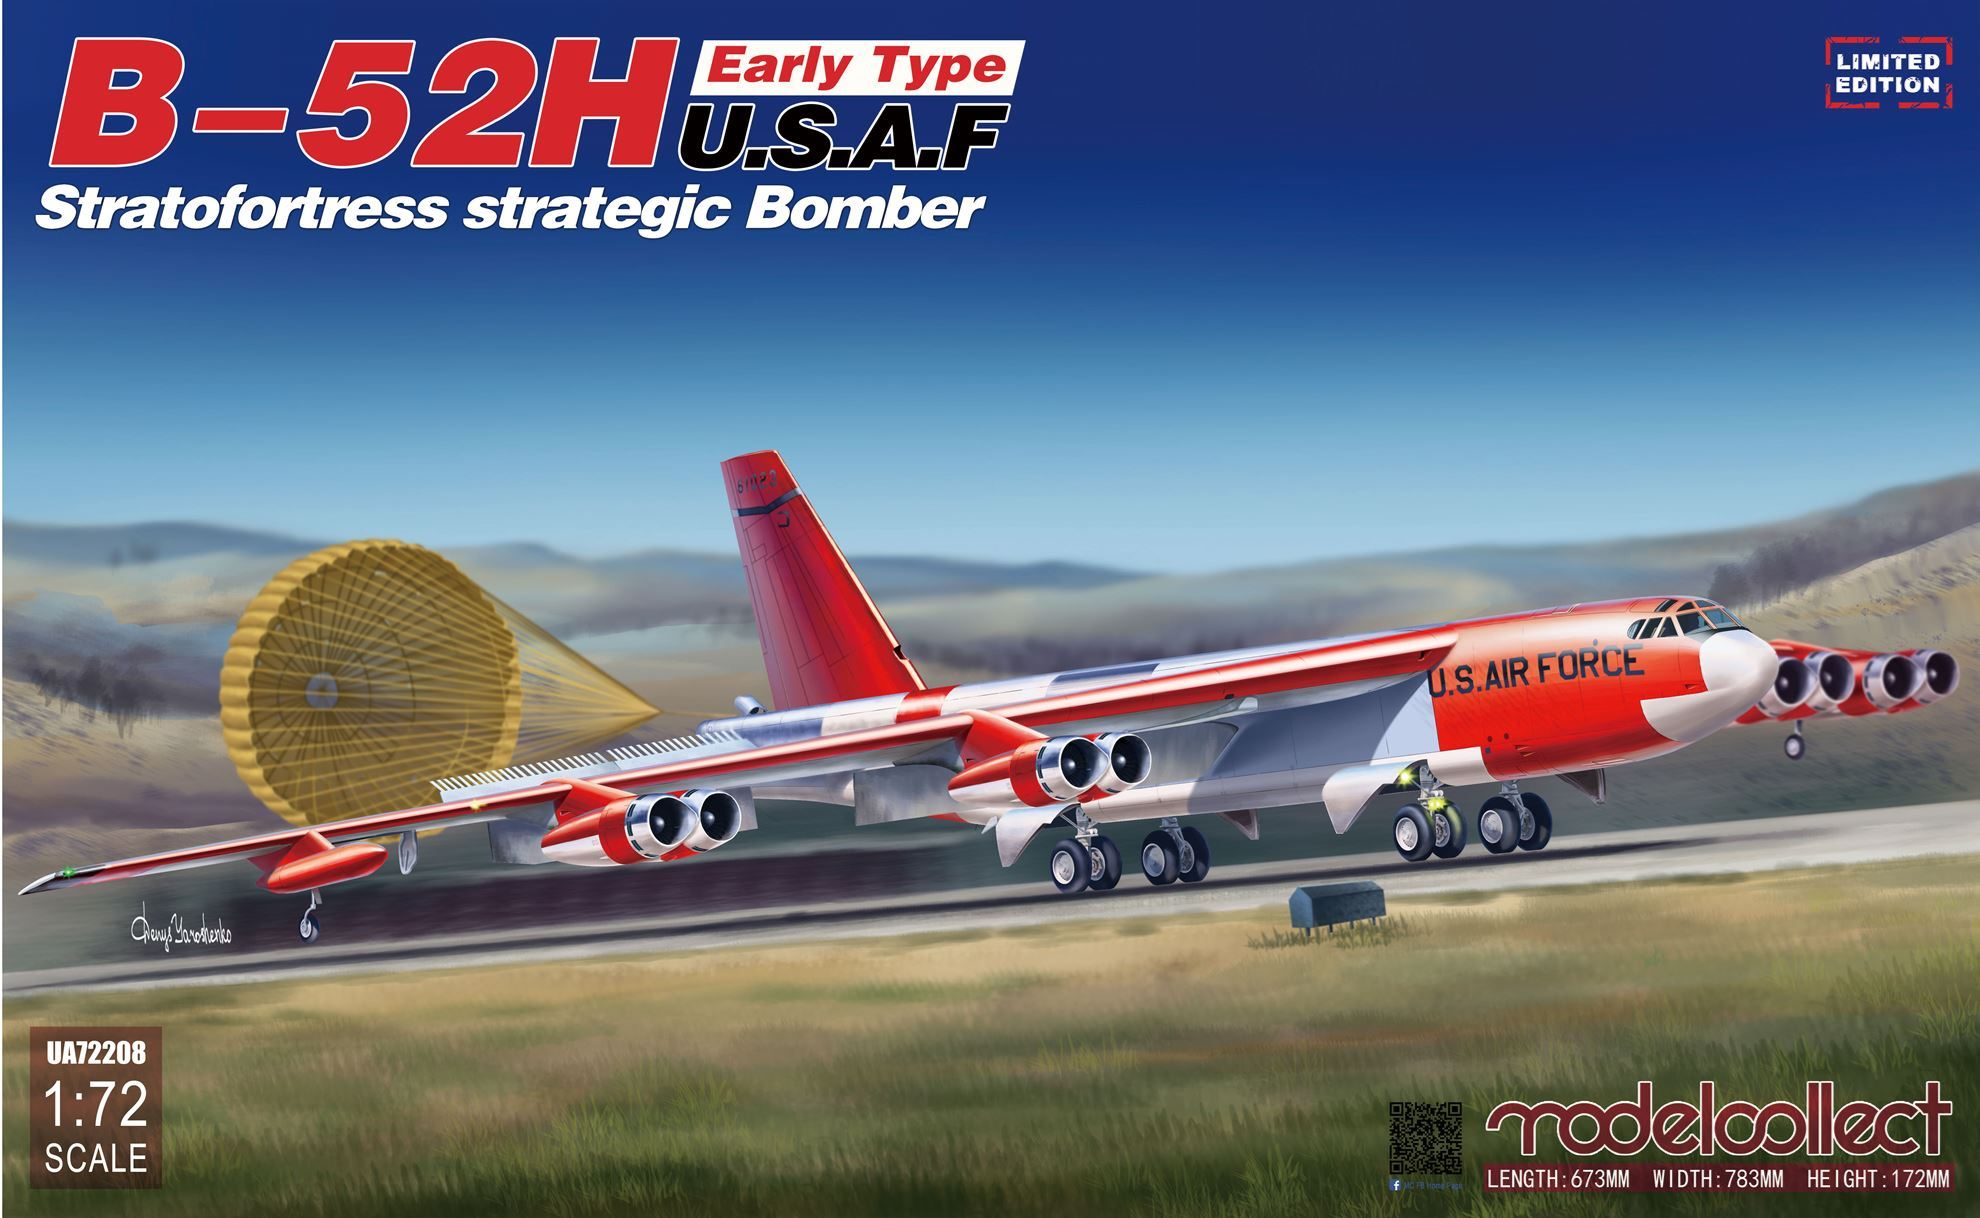 ModelCollect B-52H early type Stratofortress strategic Bomber limit Ver